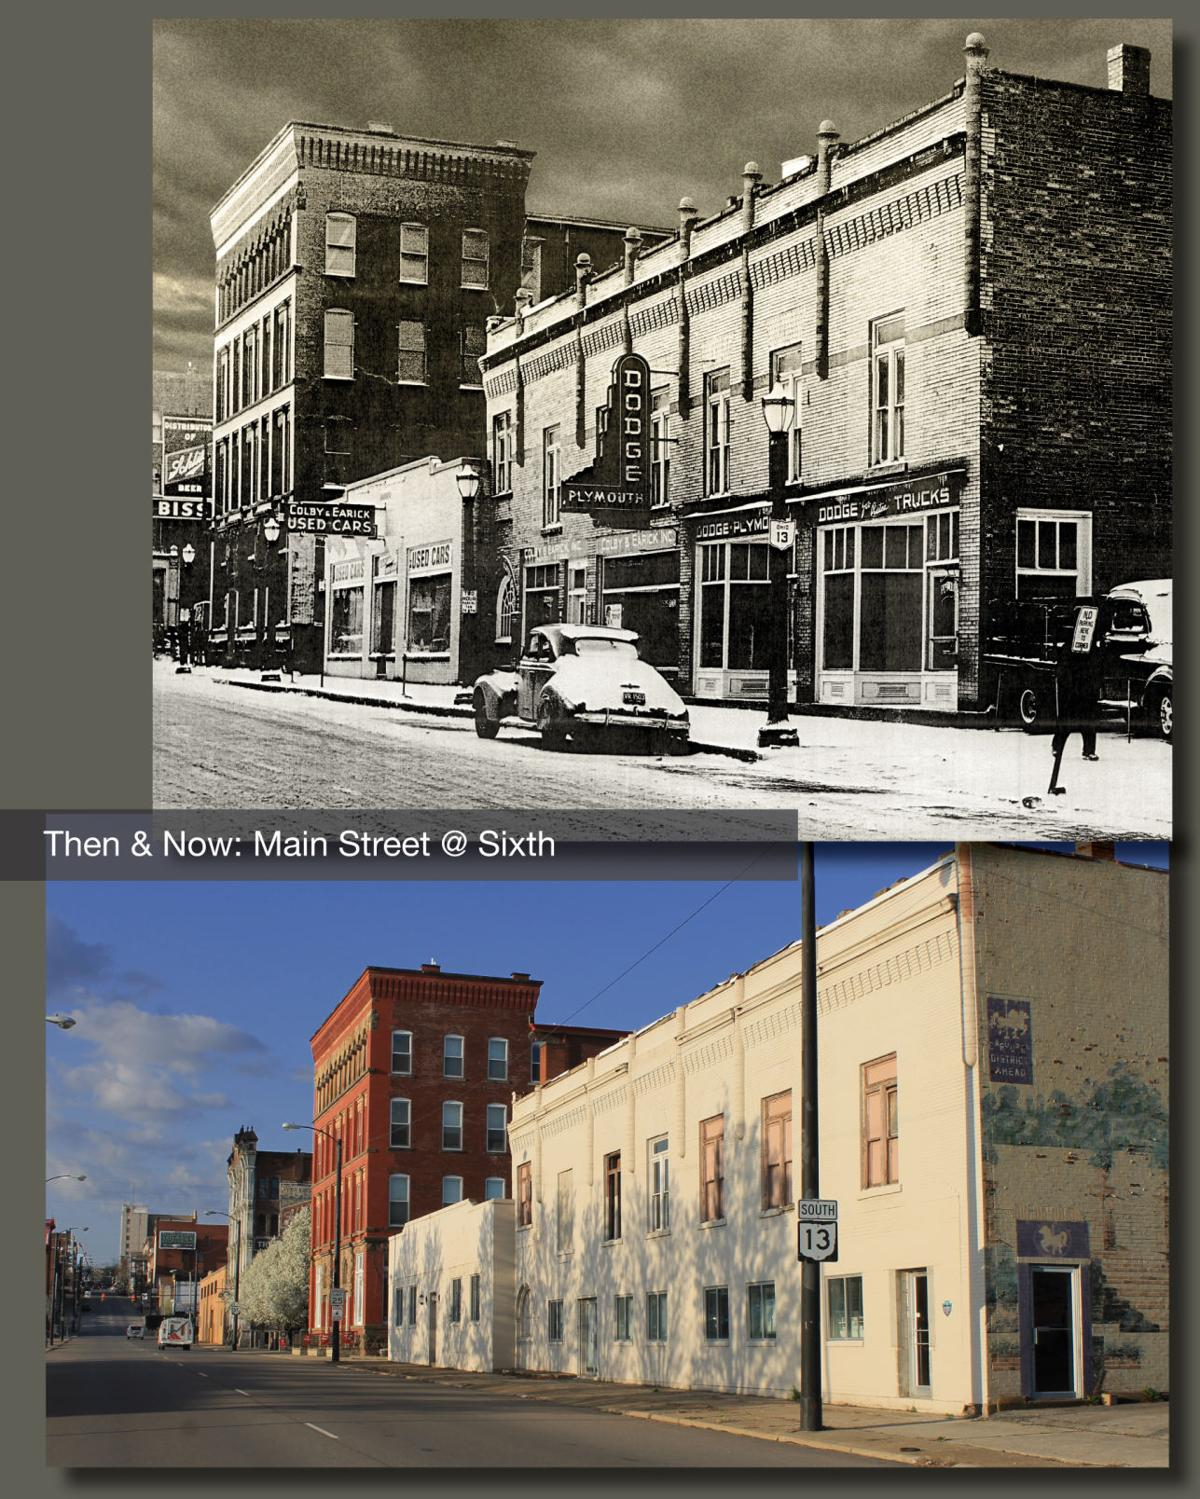 Then & Now: Main Street at Sixth